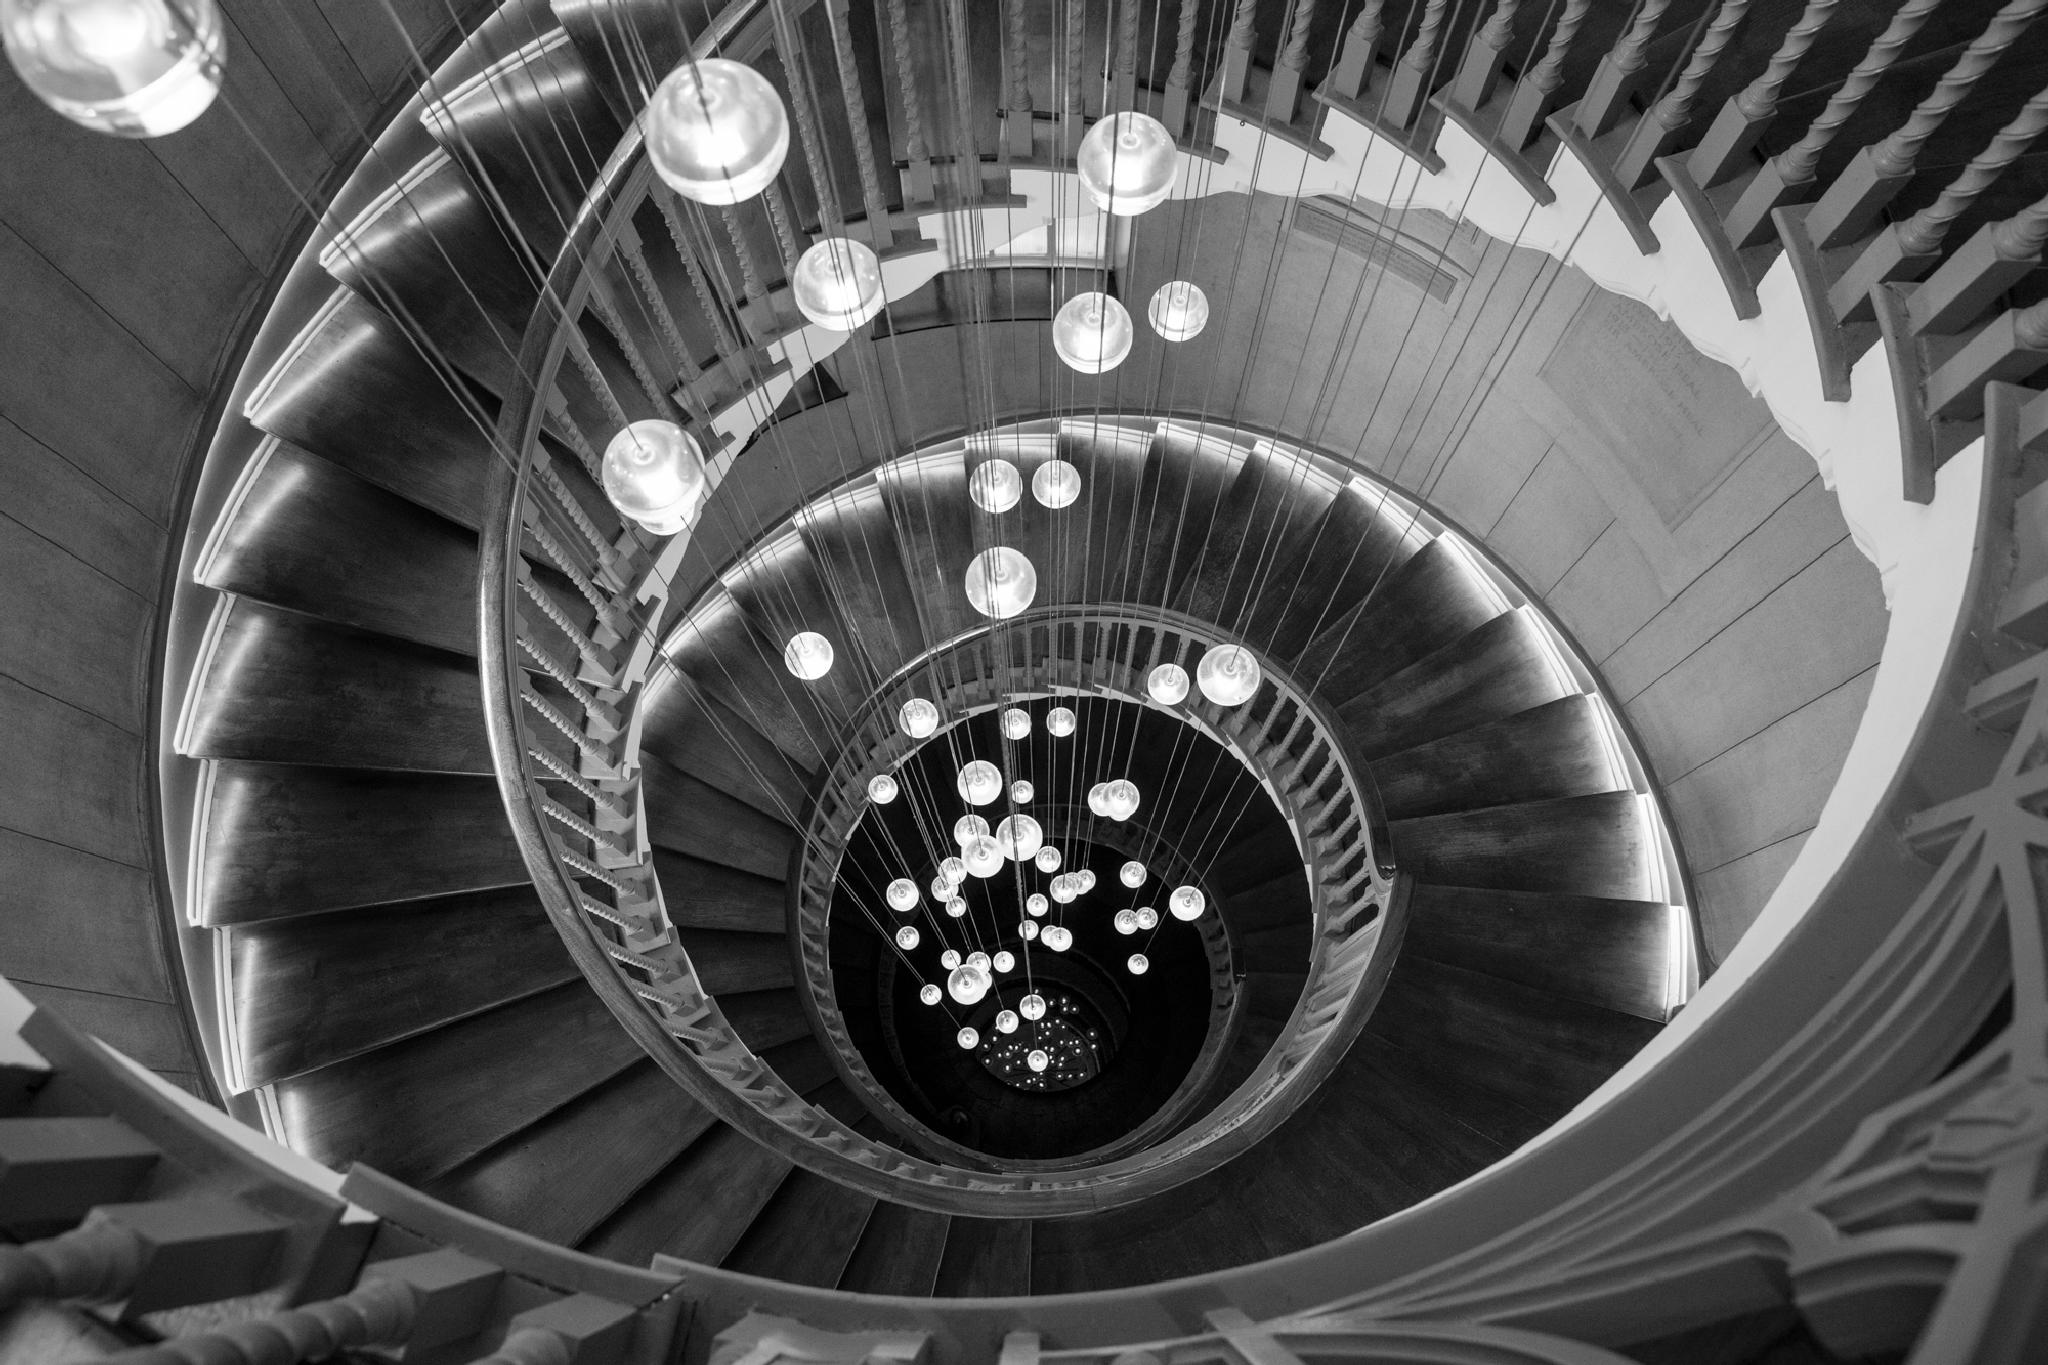 Spiral by photorob